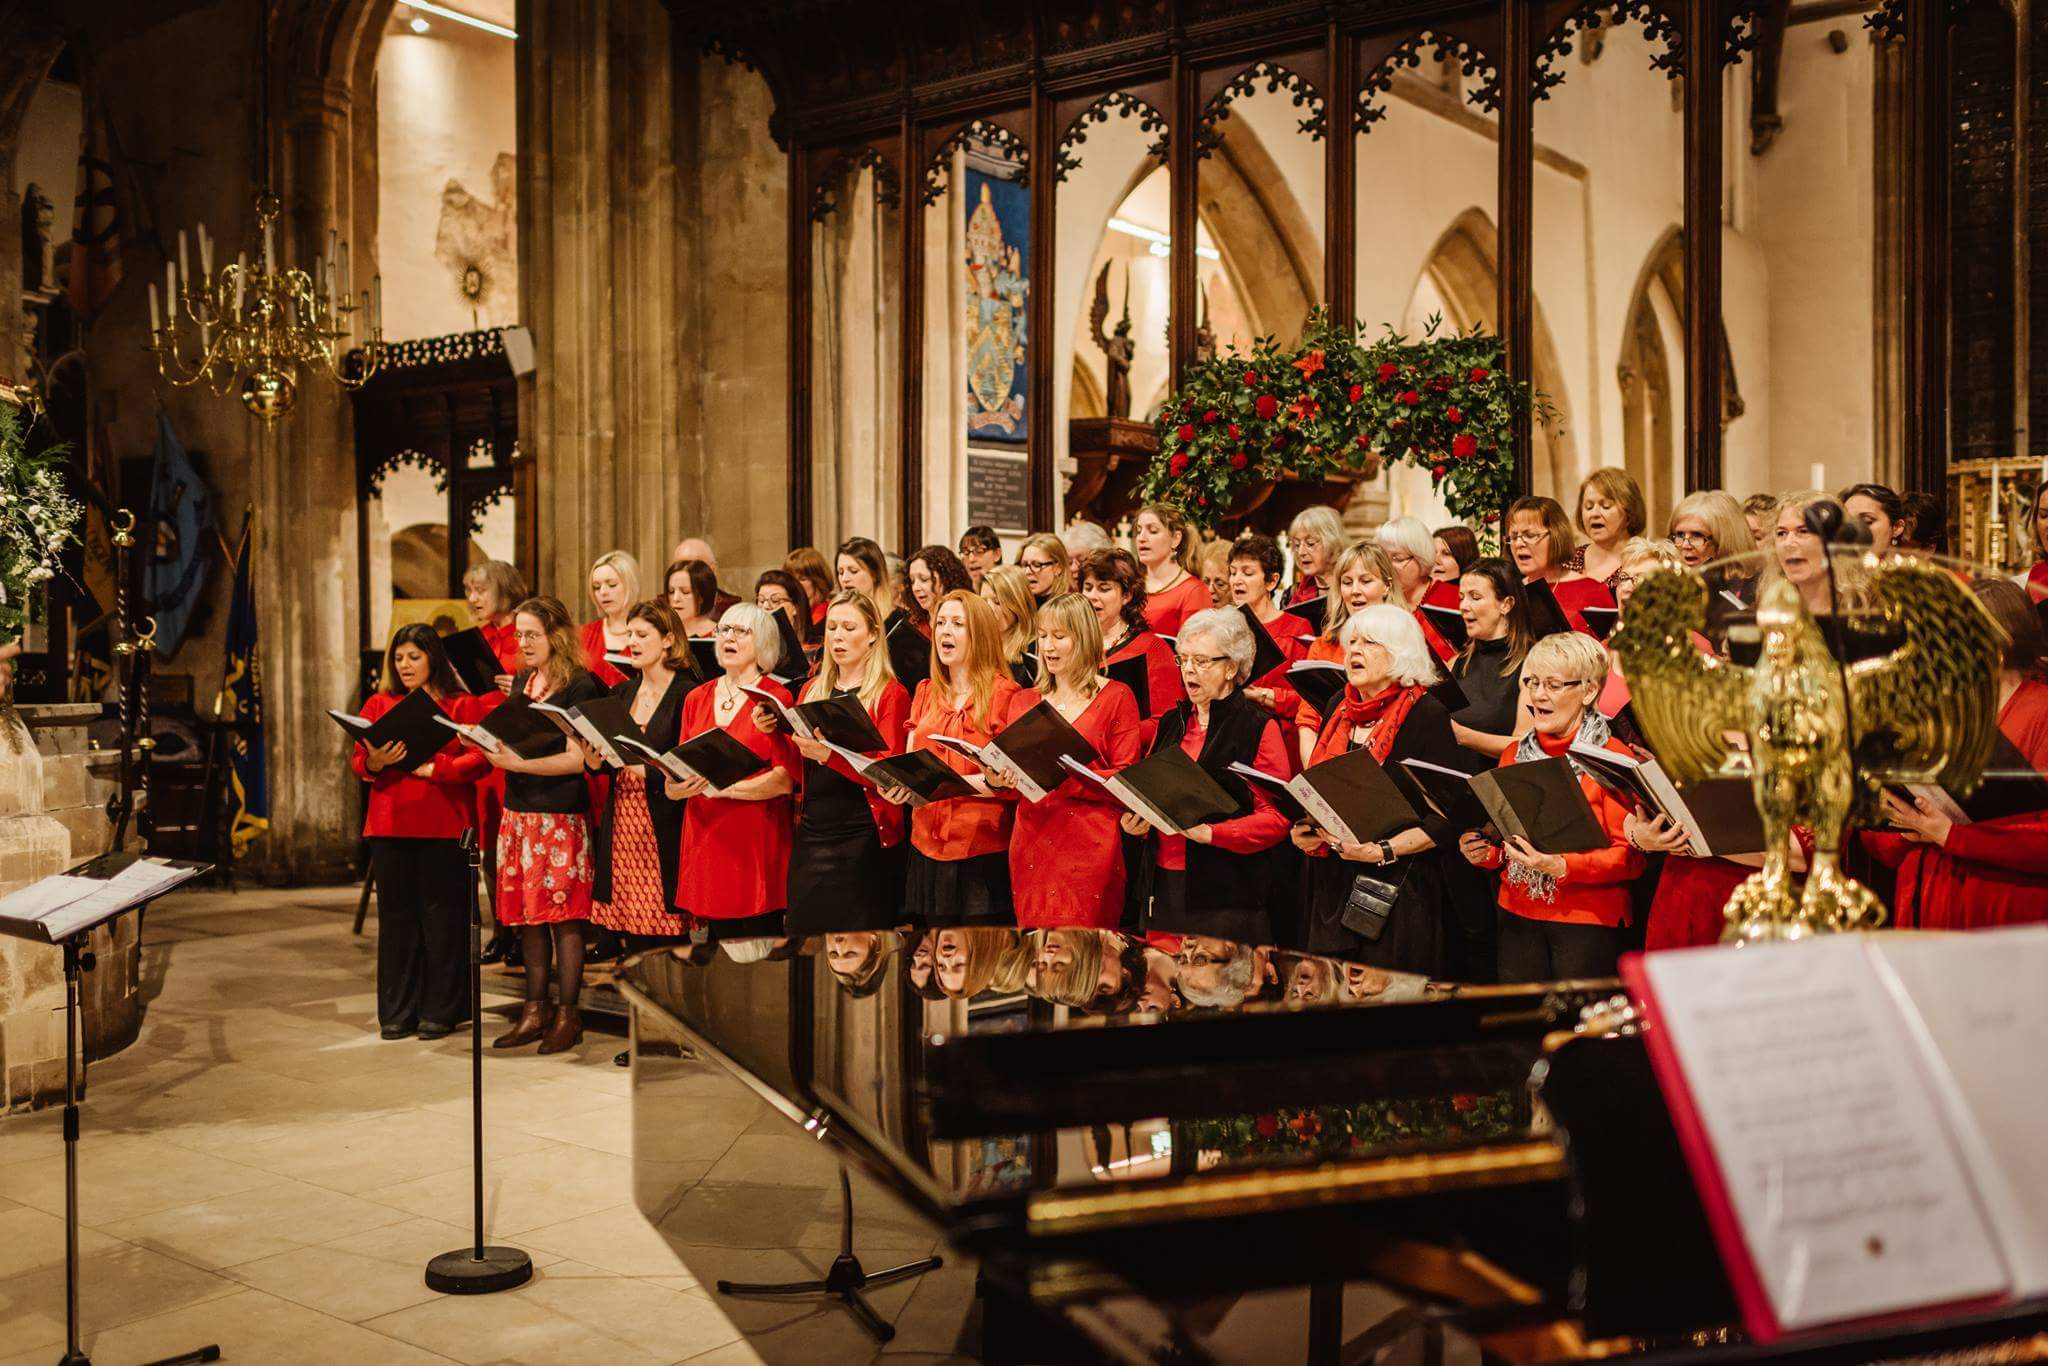 Cirencester Singers